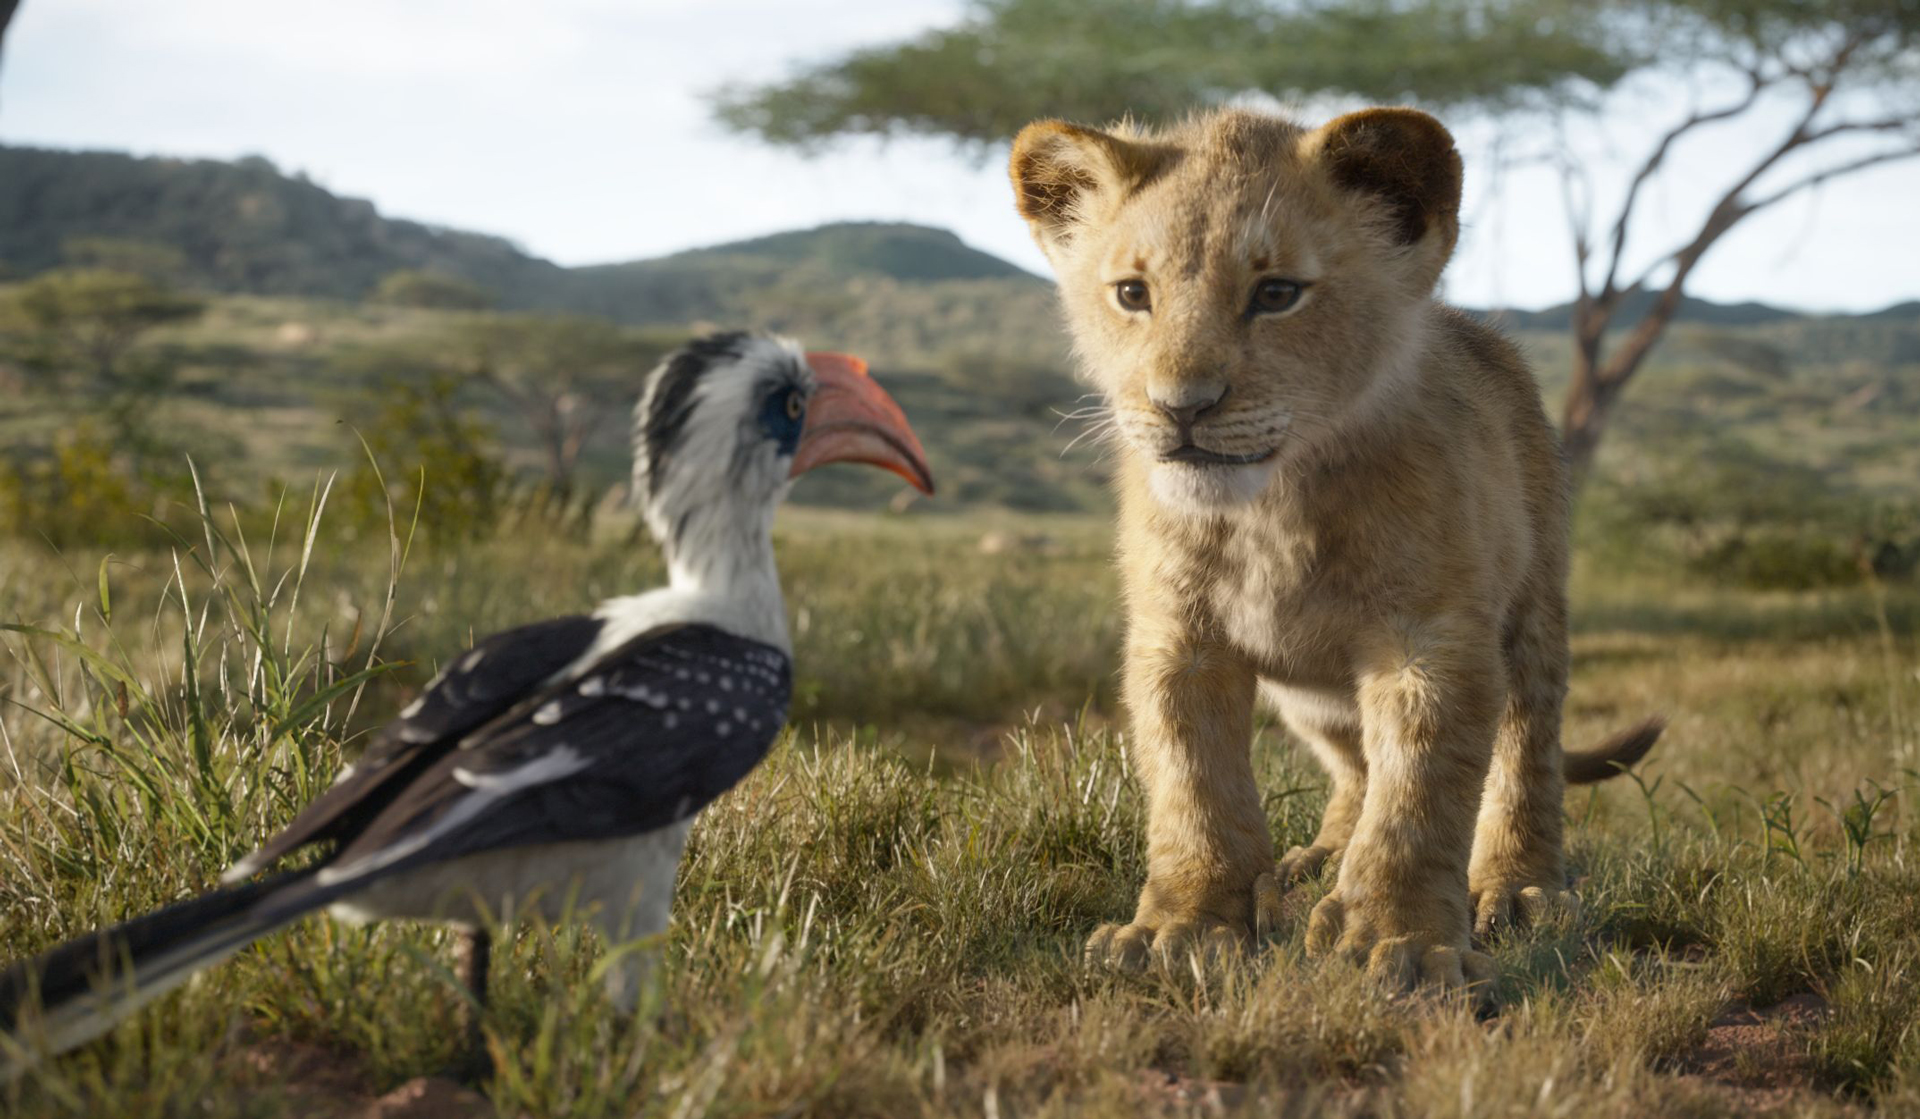 'The Lion King' Gets Off to a Roaring Start - The Walt Disney Company